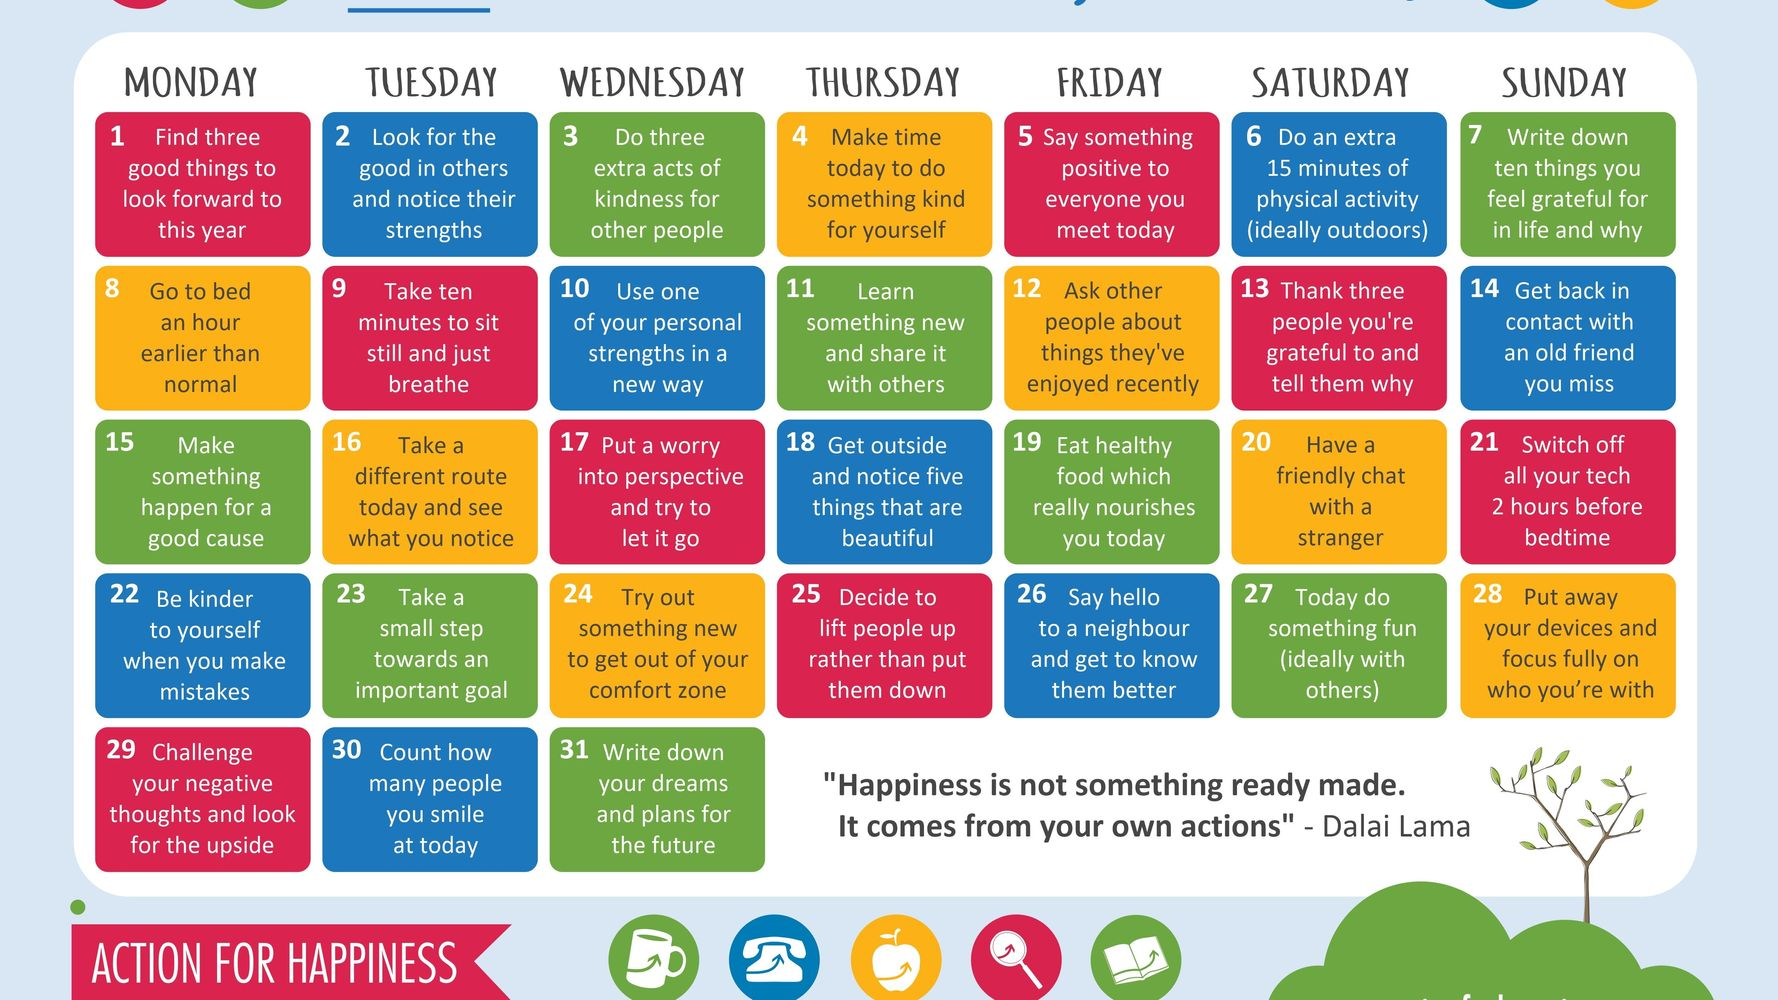 Why I Created A Kindness Calendar